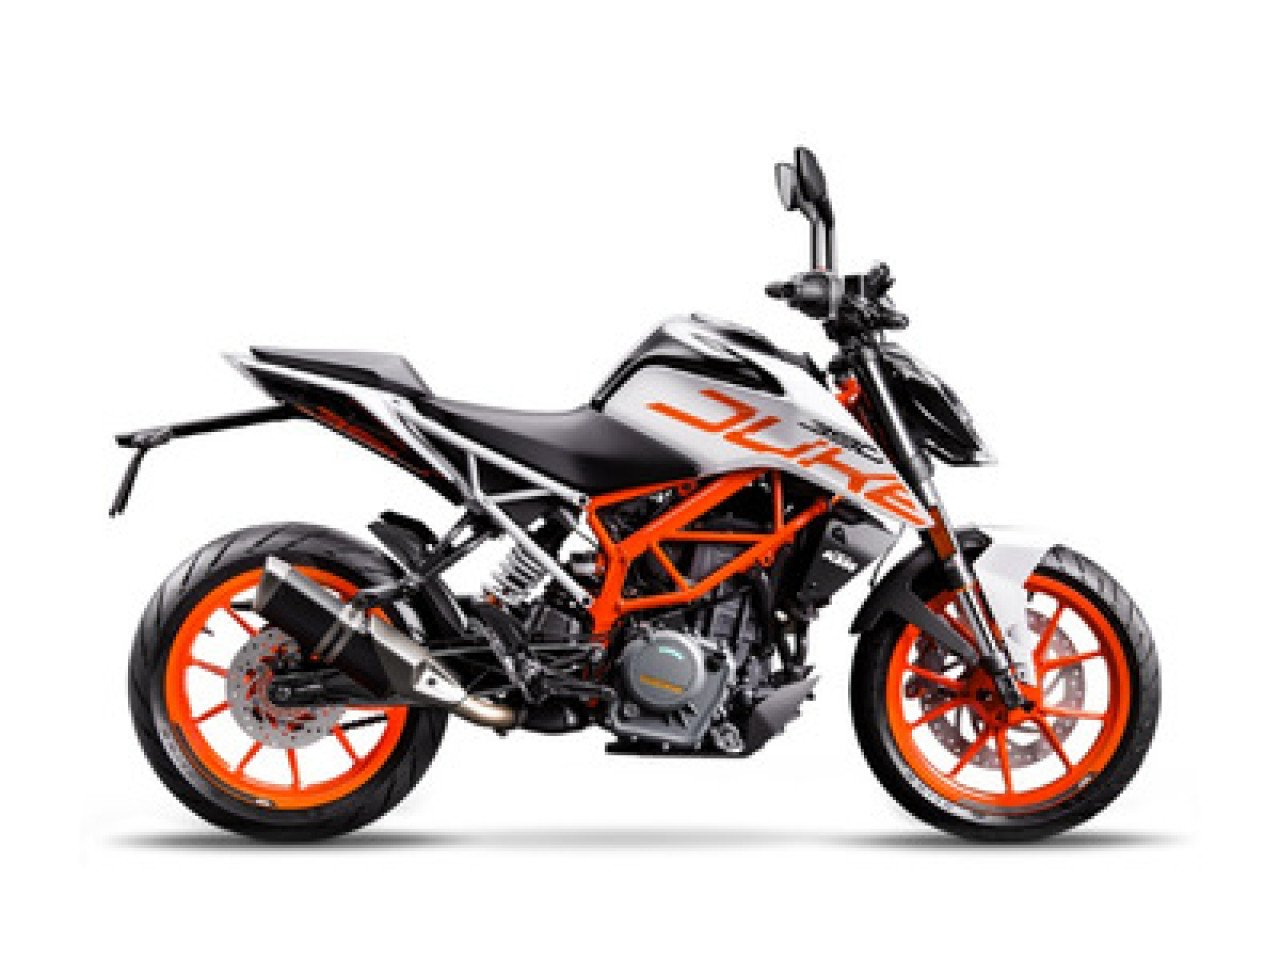 Ktm Motorcycles For Sale Fresno Ca >> 2018 Ktm 390 For Sale Near Fresno California 93710 Motorcycles On